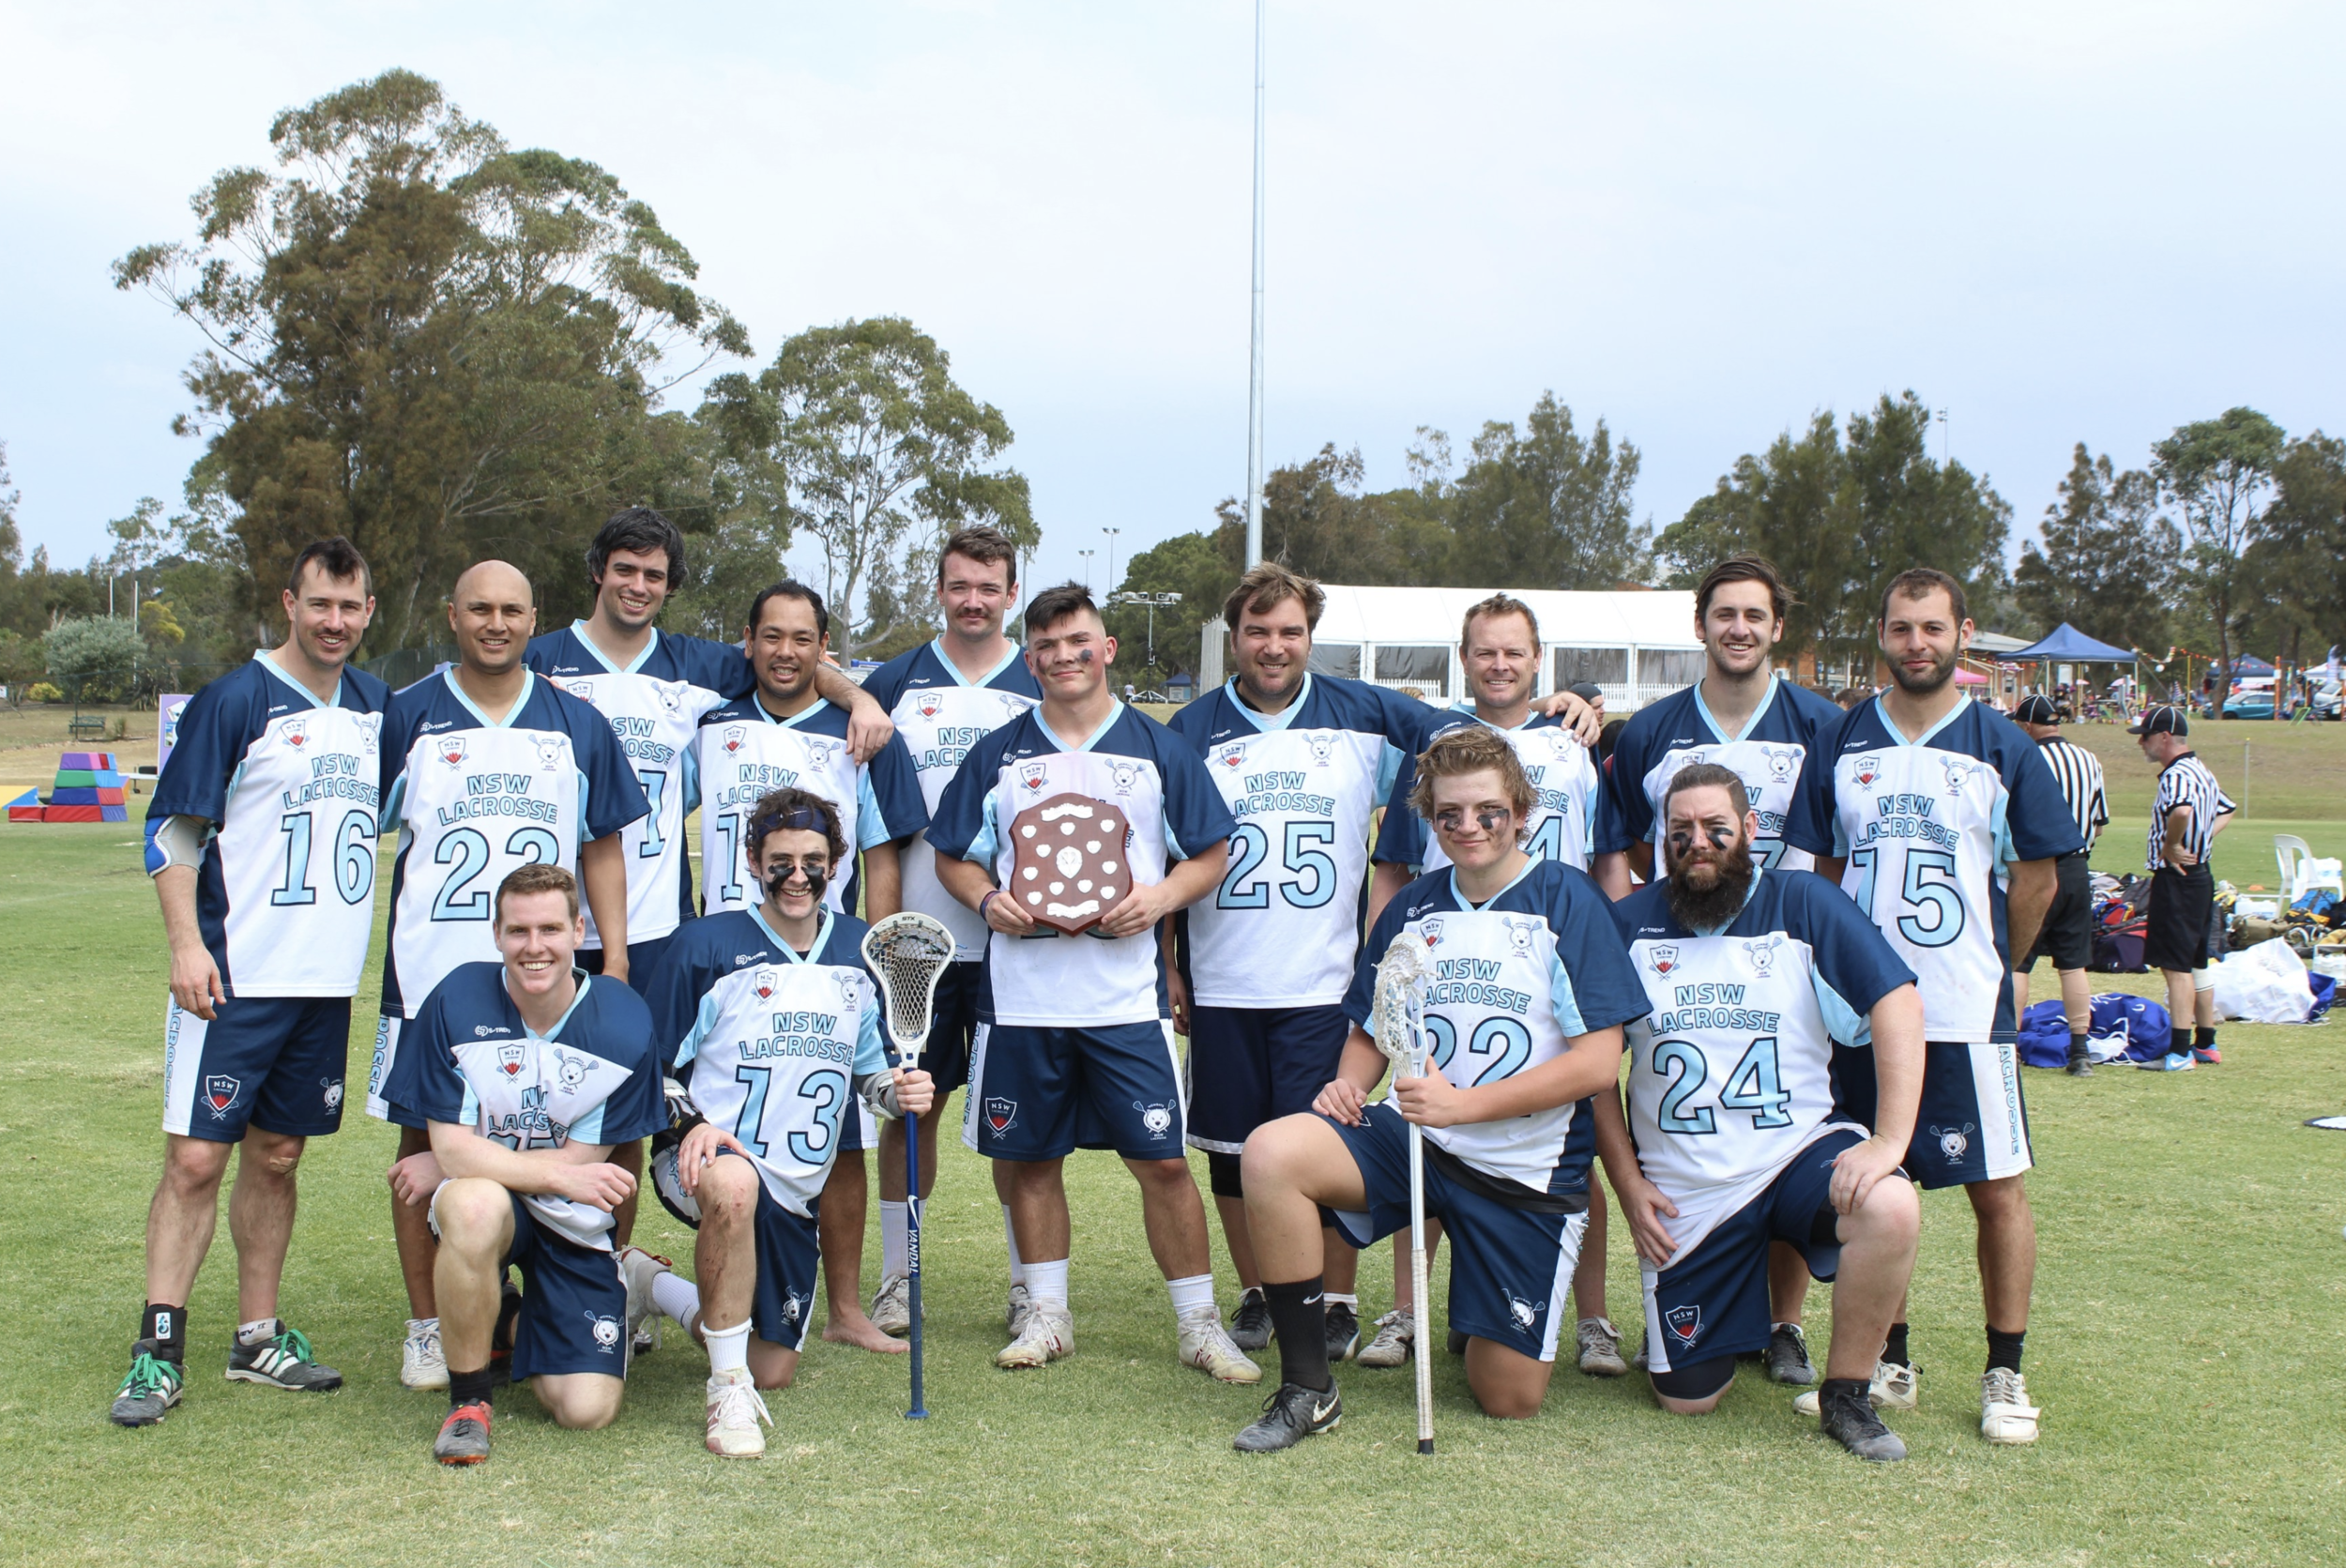 The East Coast Cup is an annual interstate battle between New South Wales and Queensland. This year Queensland is hosting. We're playing in May this year instead of September in order to start training for Nationals together